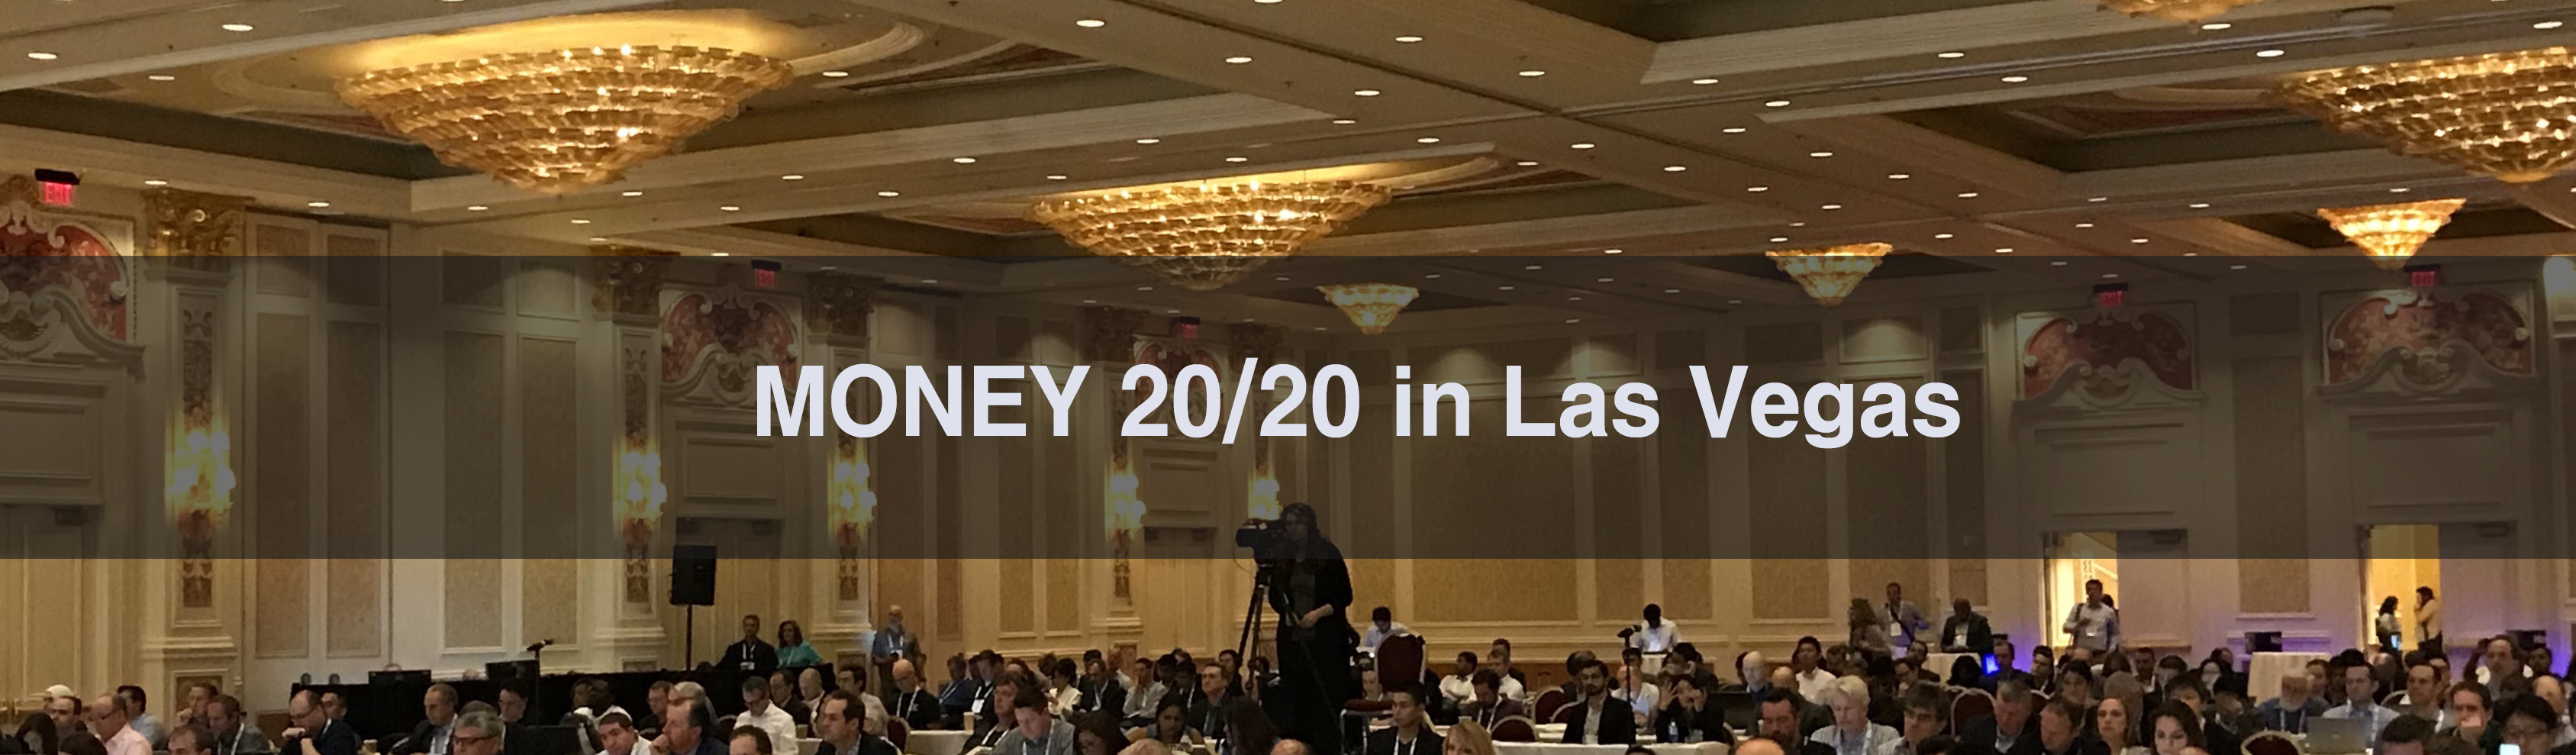 Money 20/20 in Las Vegas